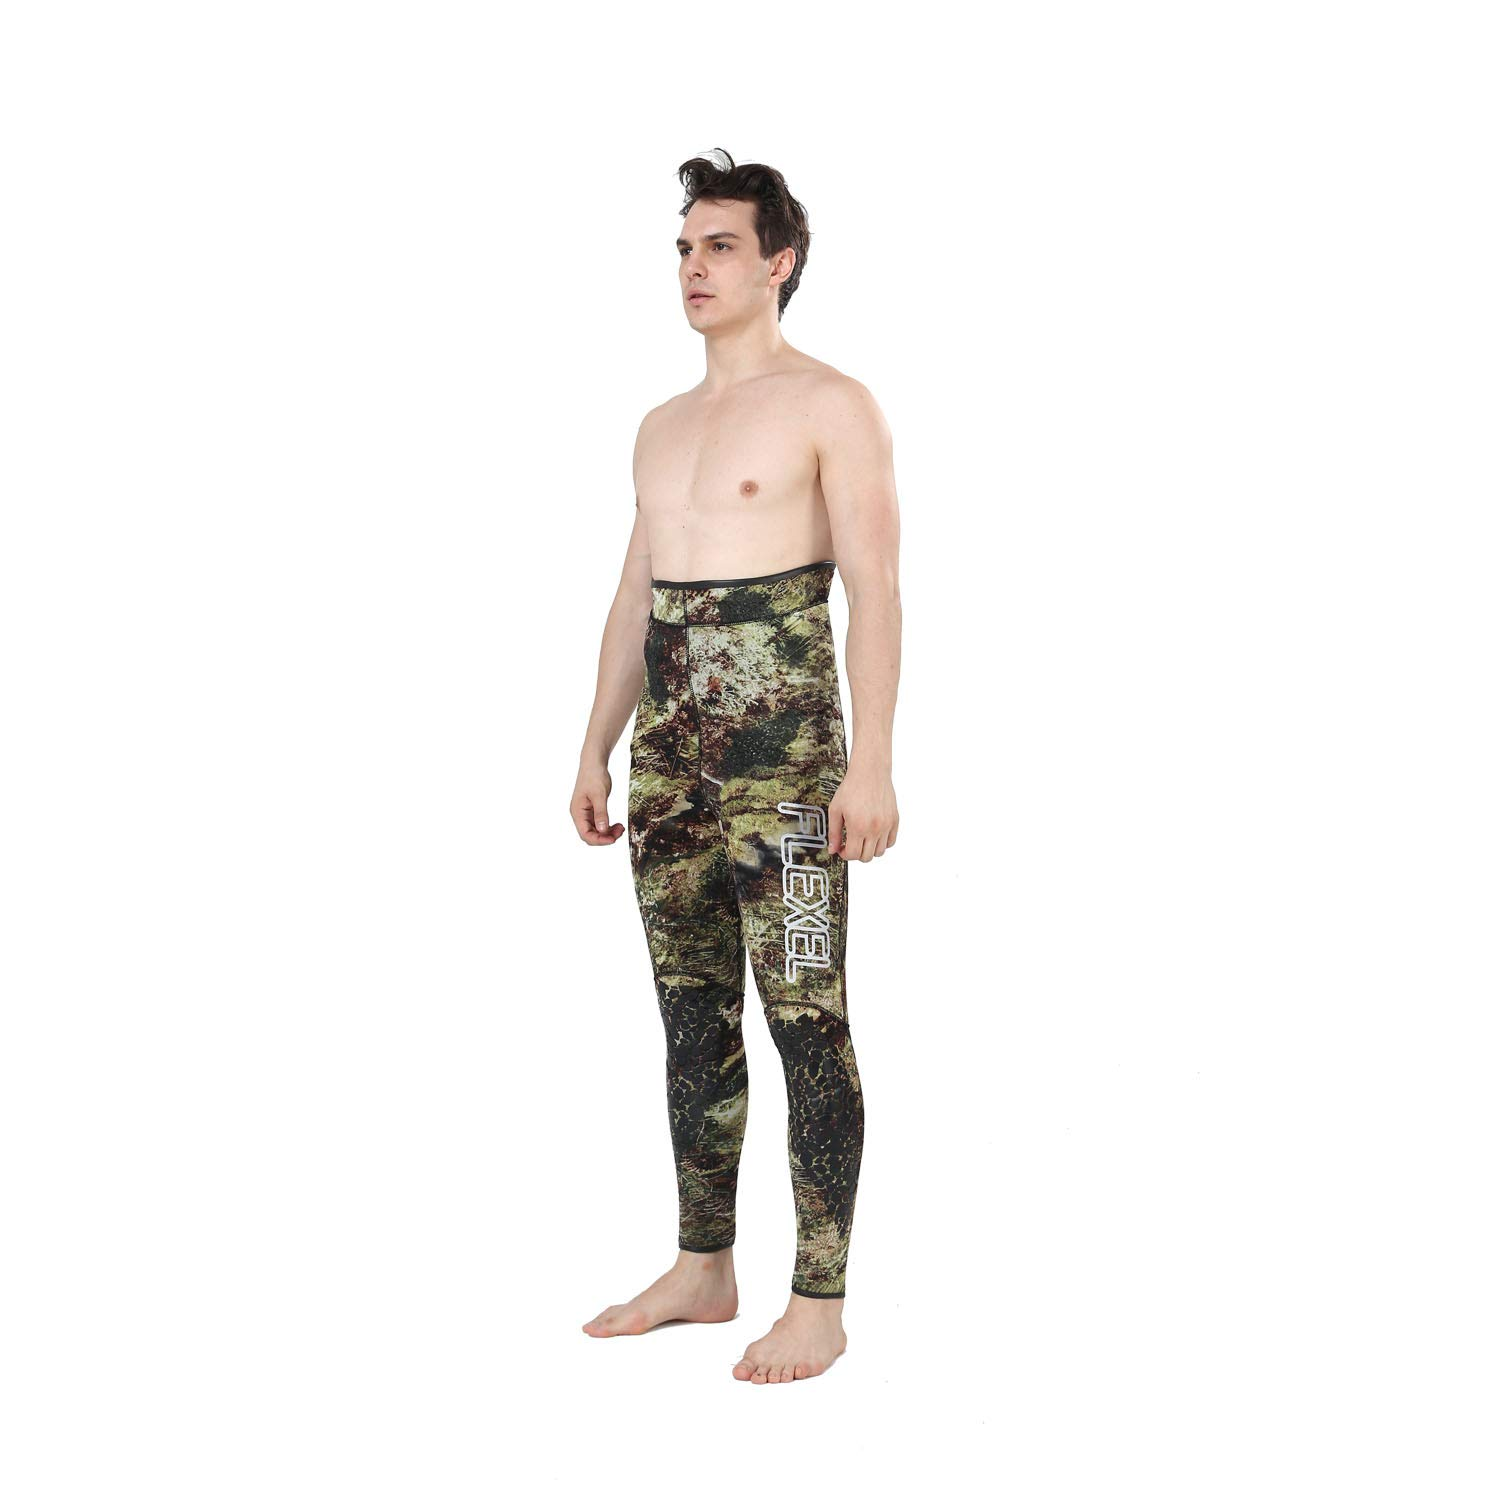 Flexel Camo Spearfishing Wetsuits Men Premium Camouflage Neoprene 2-Pieces Hoodie Freediving Fullsuit for Scuba Diving Snorkeling Swimming (7mm Grass camo, Large) by Flexel (Image #5)